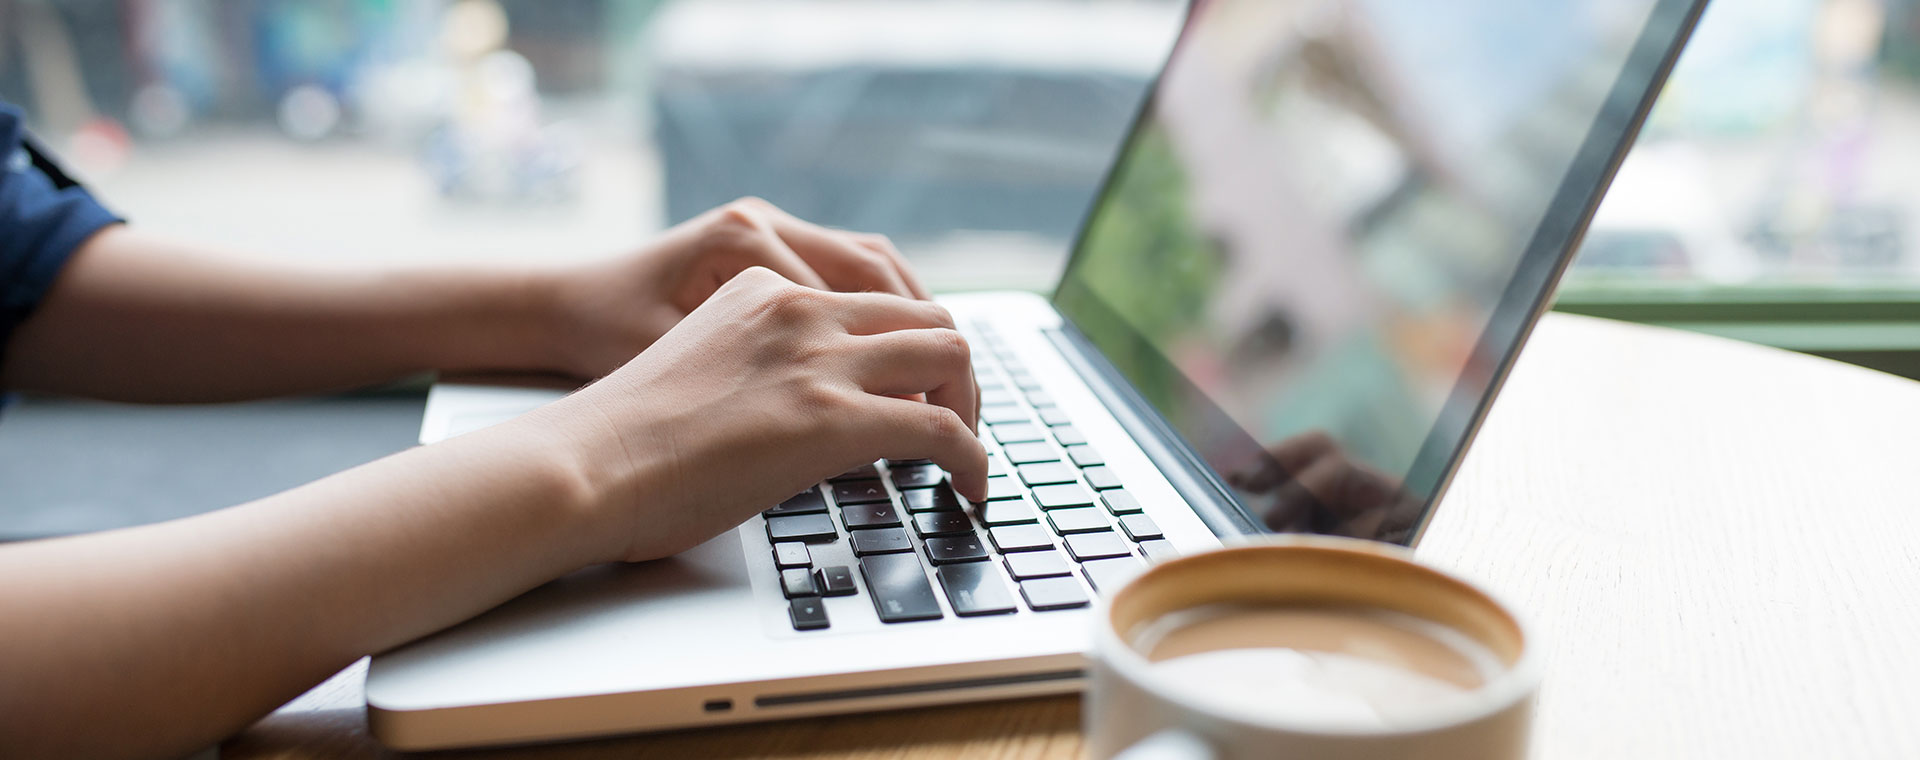 A woman is typing on a laptop, only her forearms are visible. She is sitting at a light, wooden table with a cup of coffee beside the laptop.